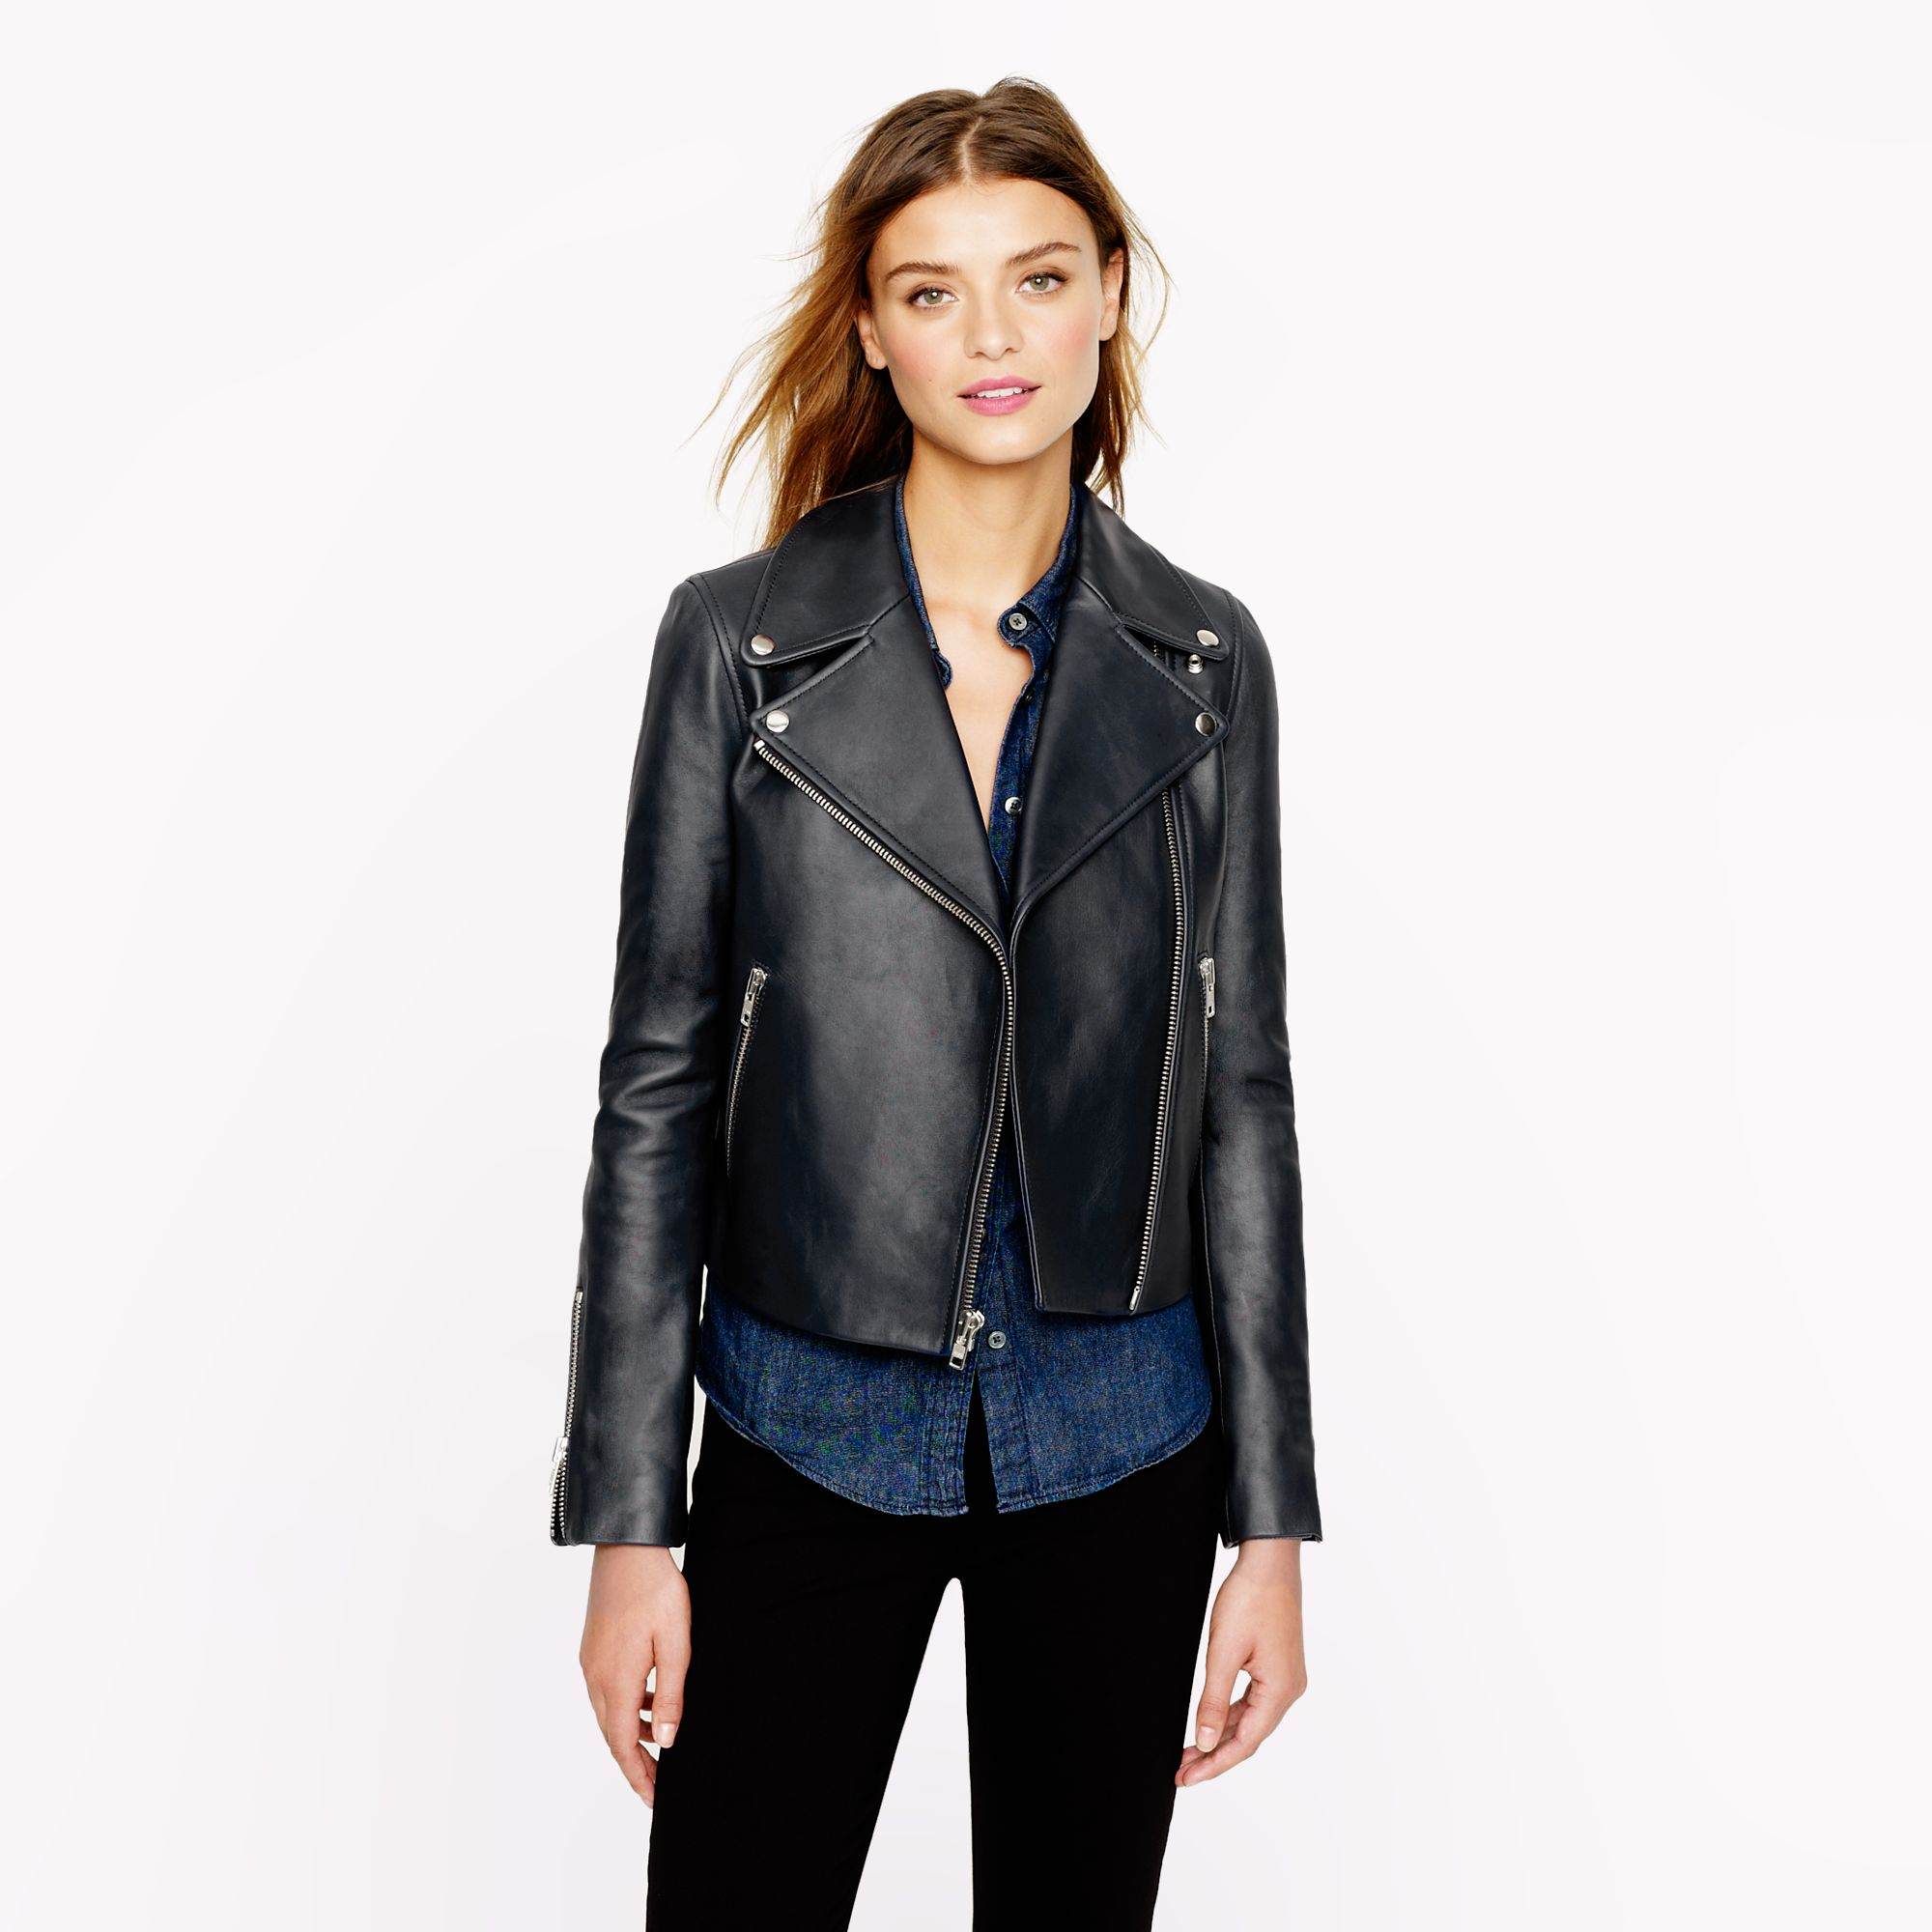 J.crew Collection Leather Moto Jacket in Blue (navy)